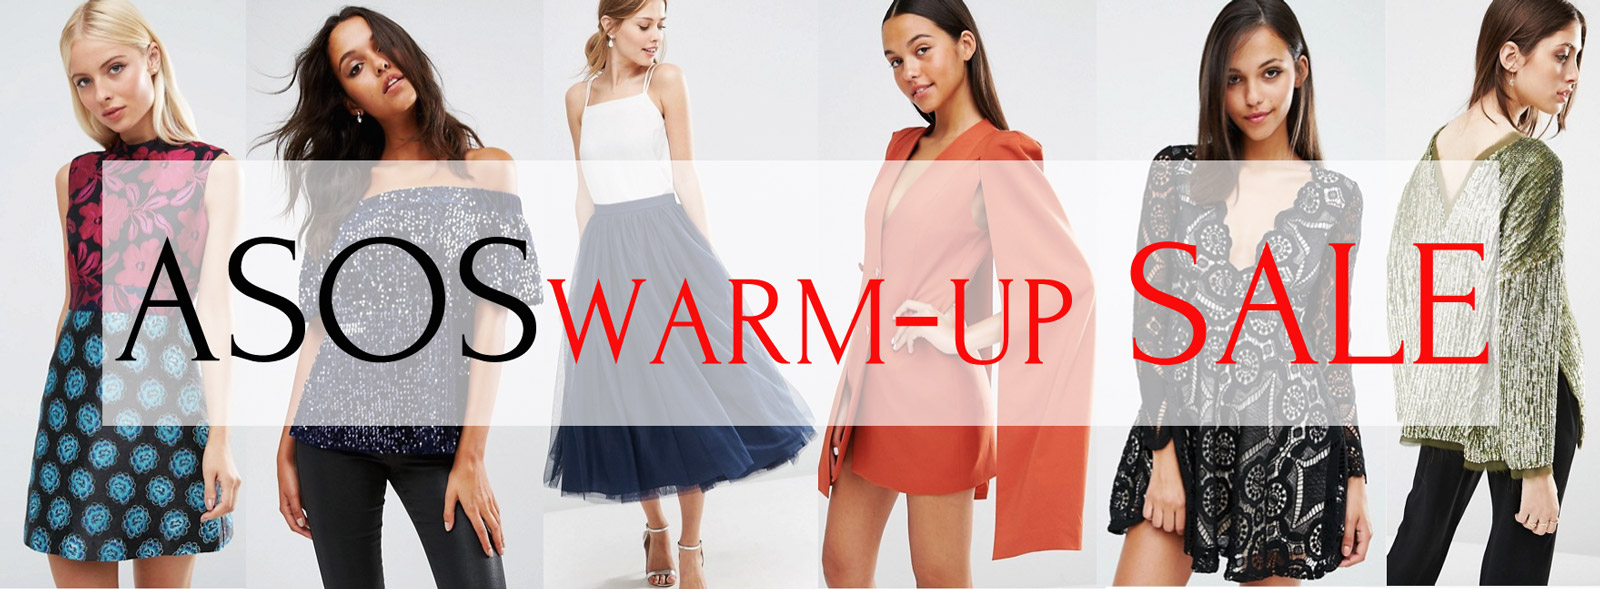 asos-warm-up-sale